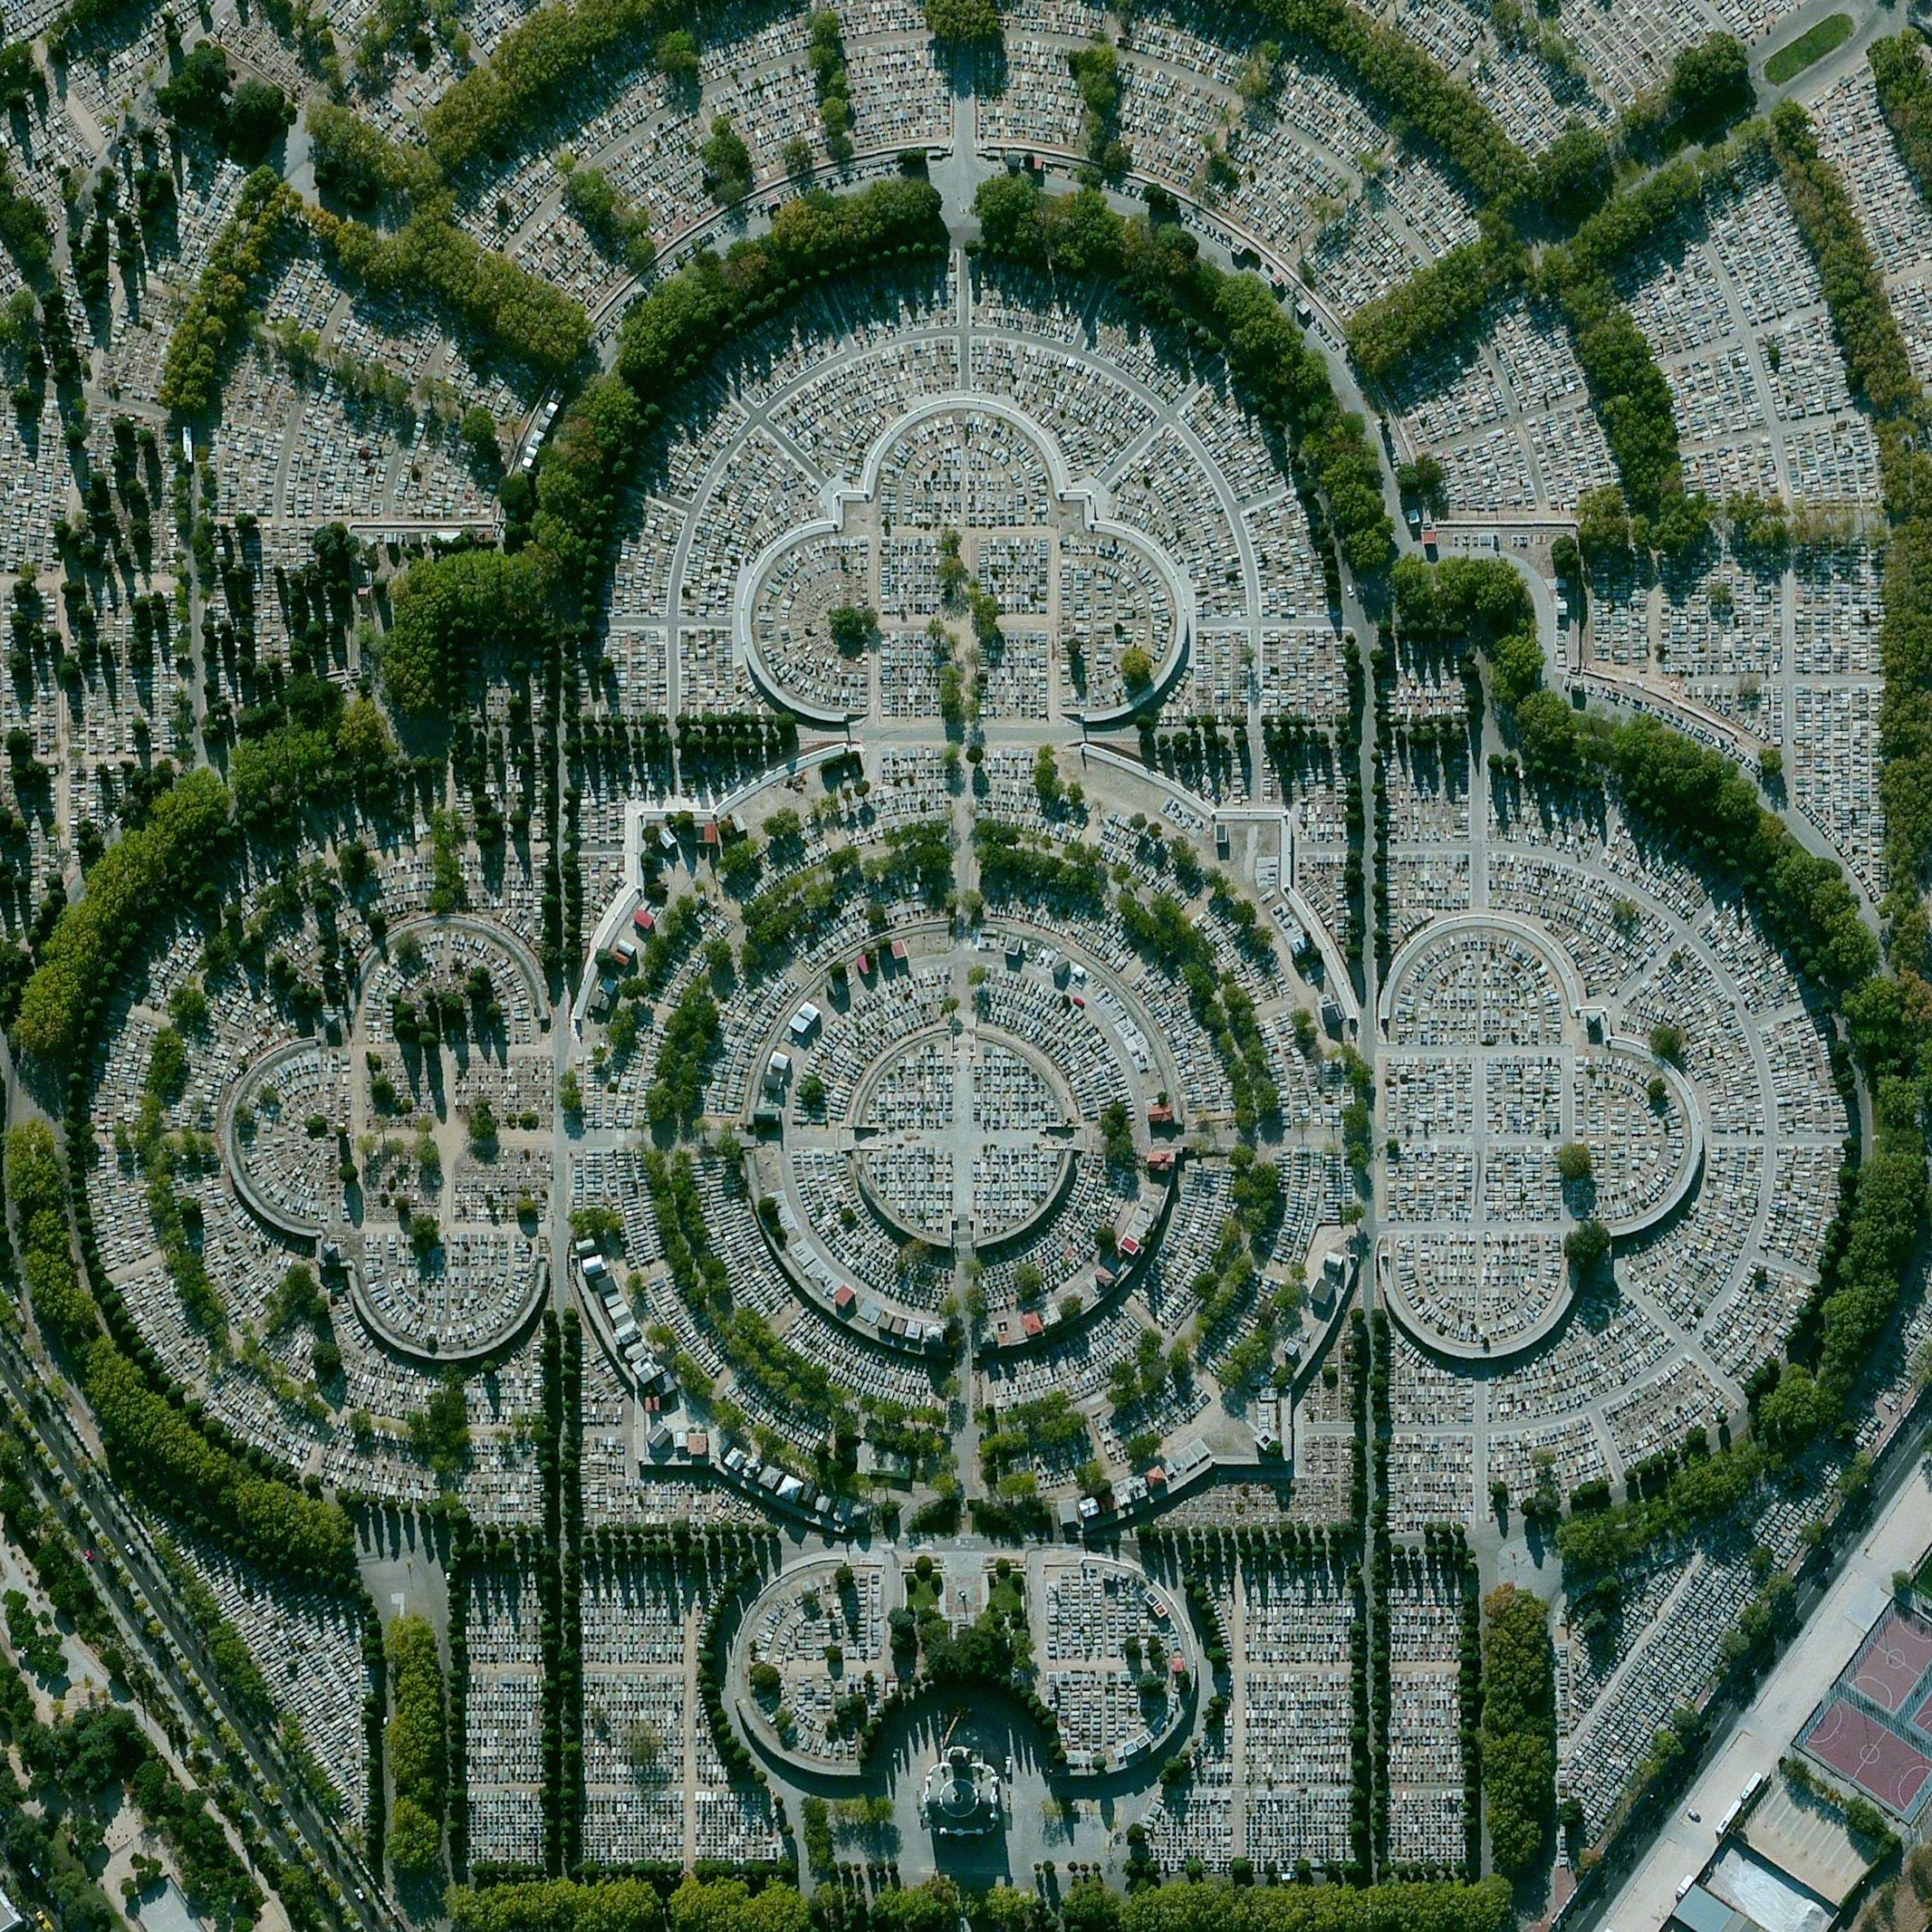 7/16/2015   Our Lady of Almudena Cemetery   Madrid, Spain  40°25′10″N 3°38′26″W    Our Lady of Almudena Cemetery in Madrid, Spain is one of the largest cemeteries in the world. The number of gravesites - estimated at five million - is greater than the population of Madrid itself.